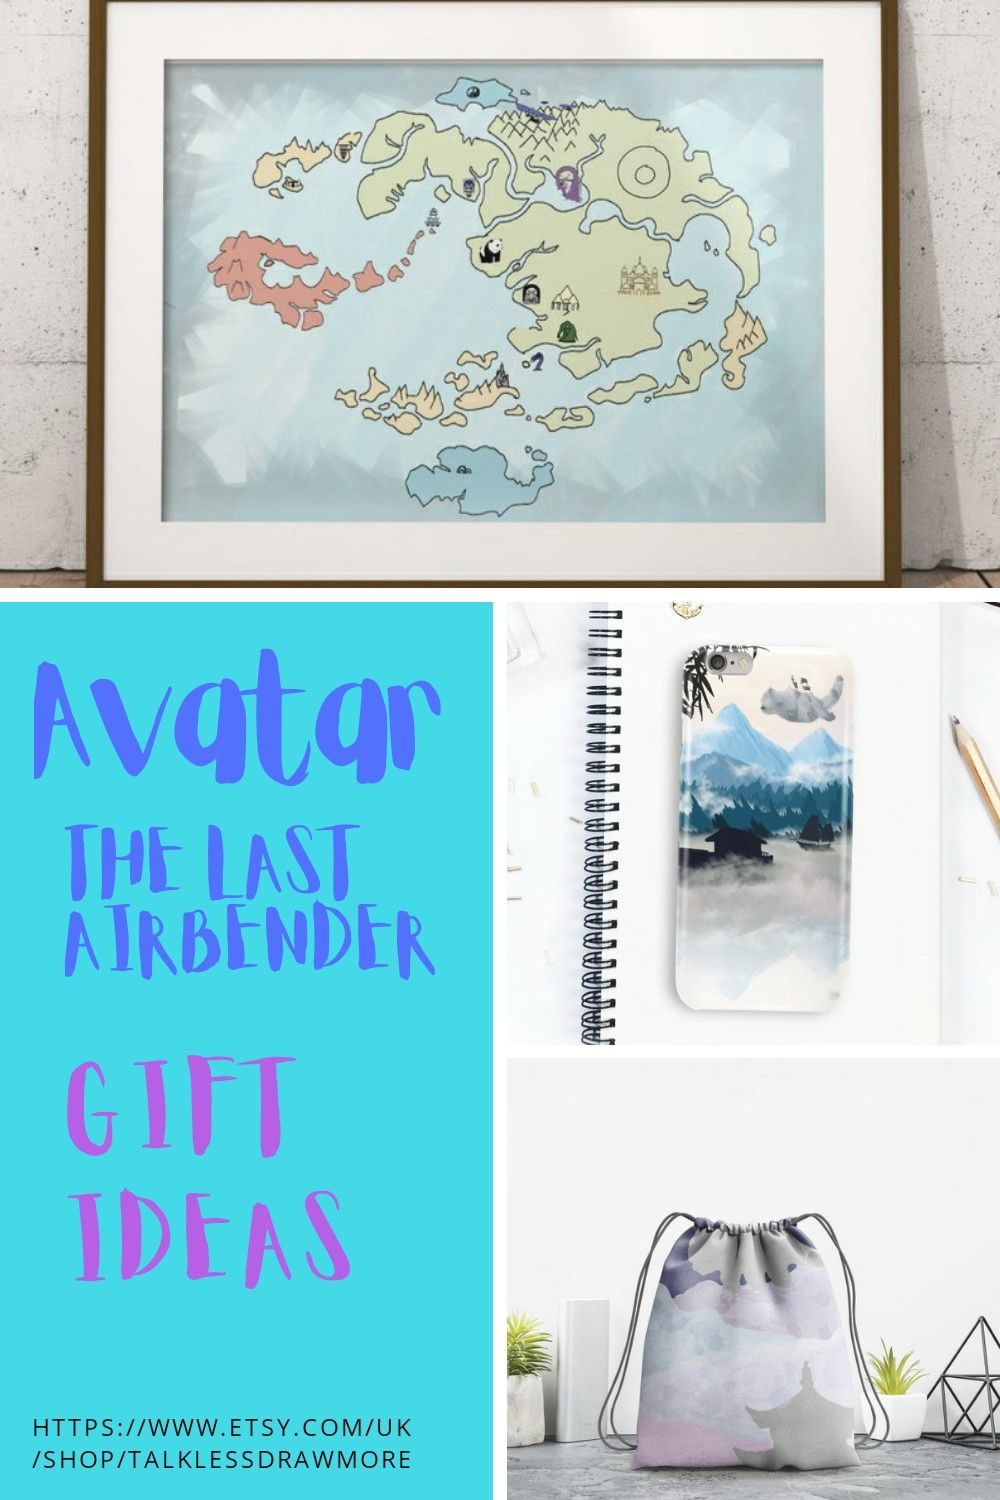 Avatar the last airbender gift ideas etsy in 2021